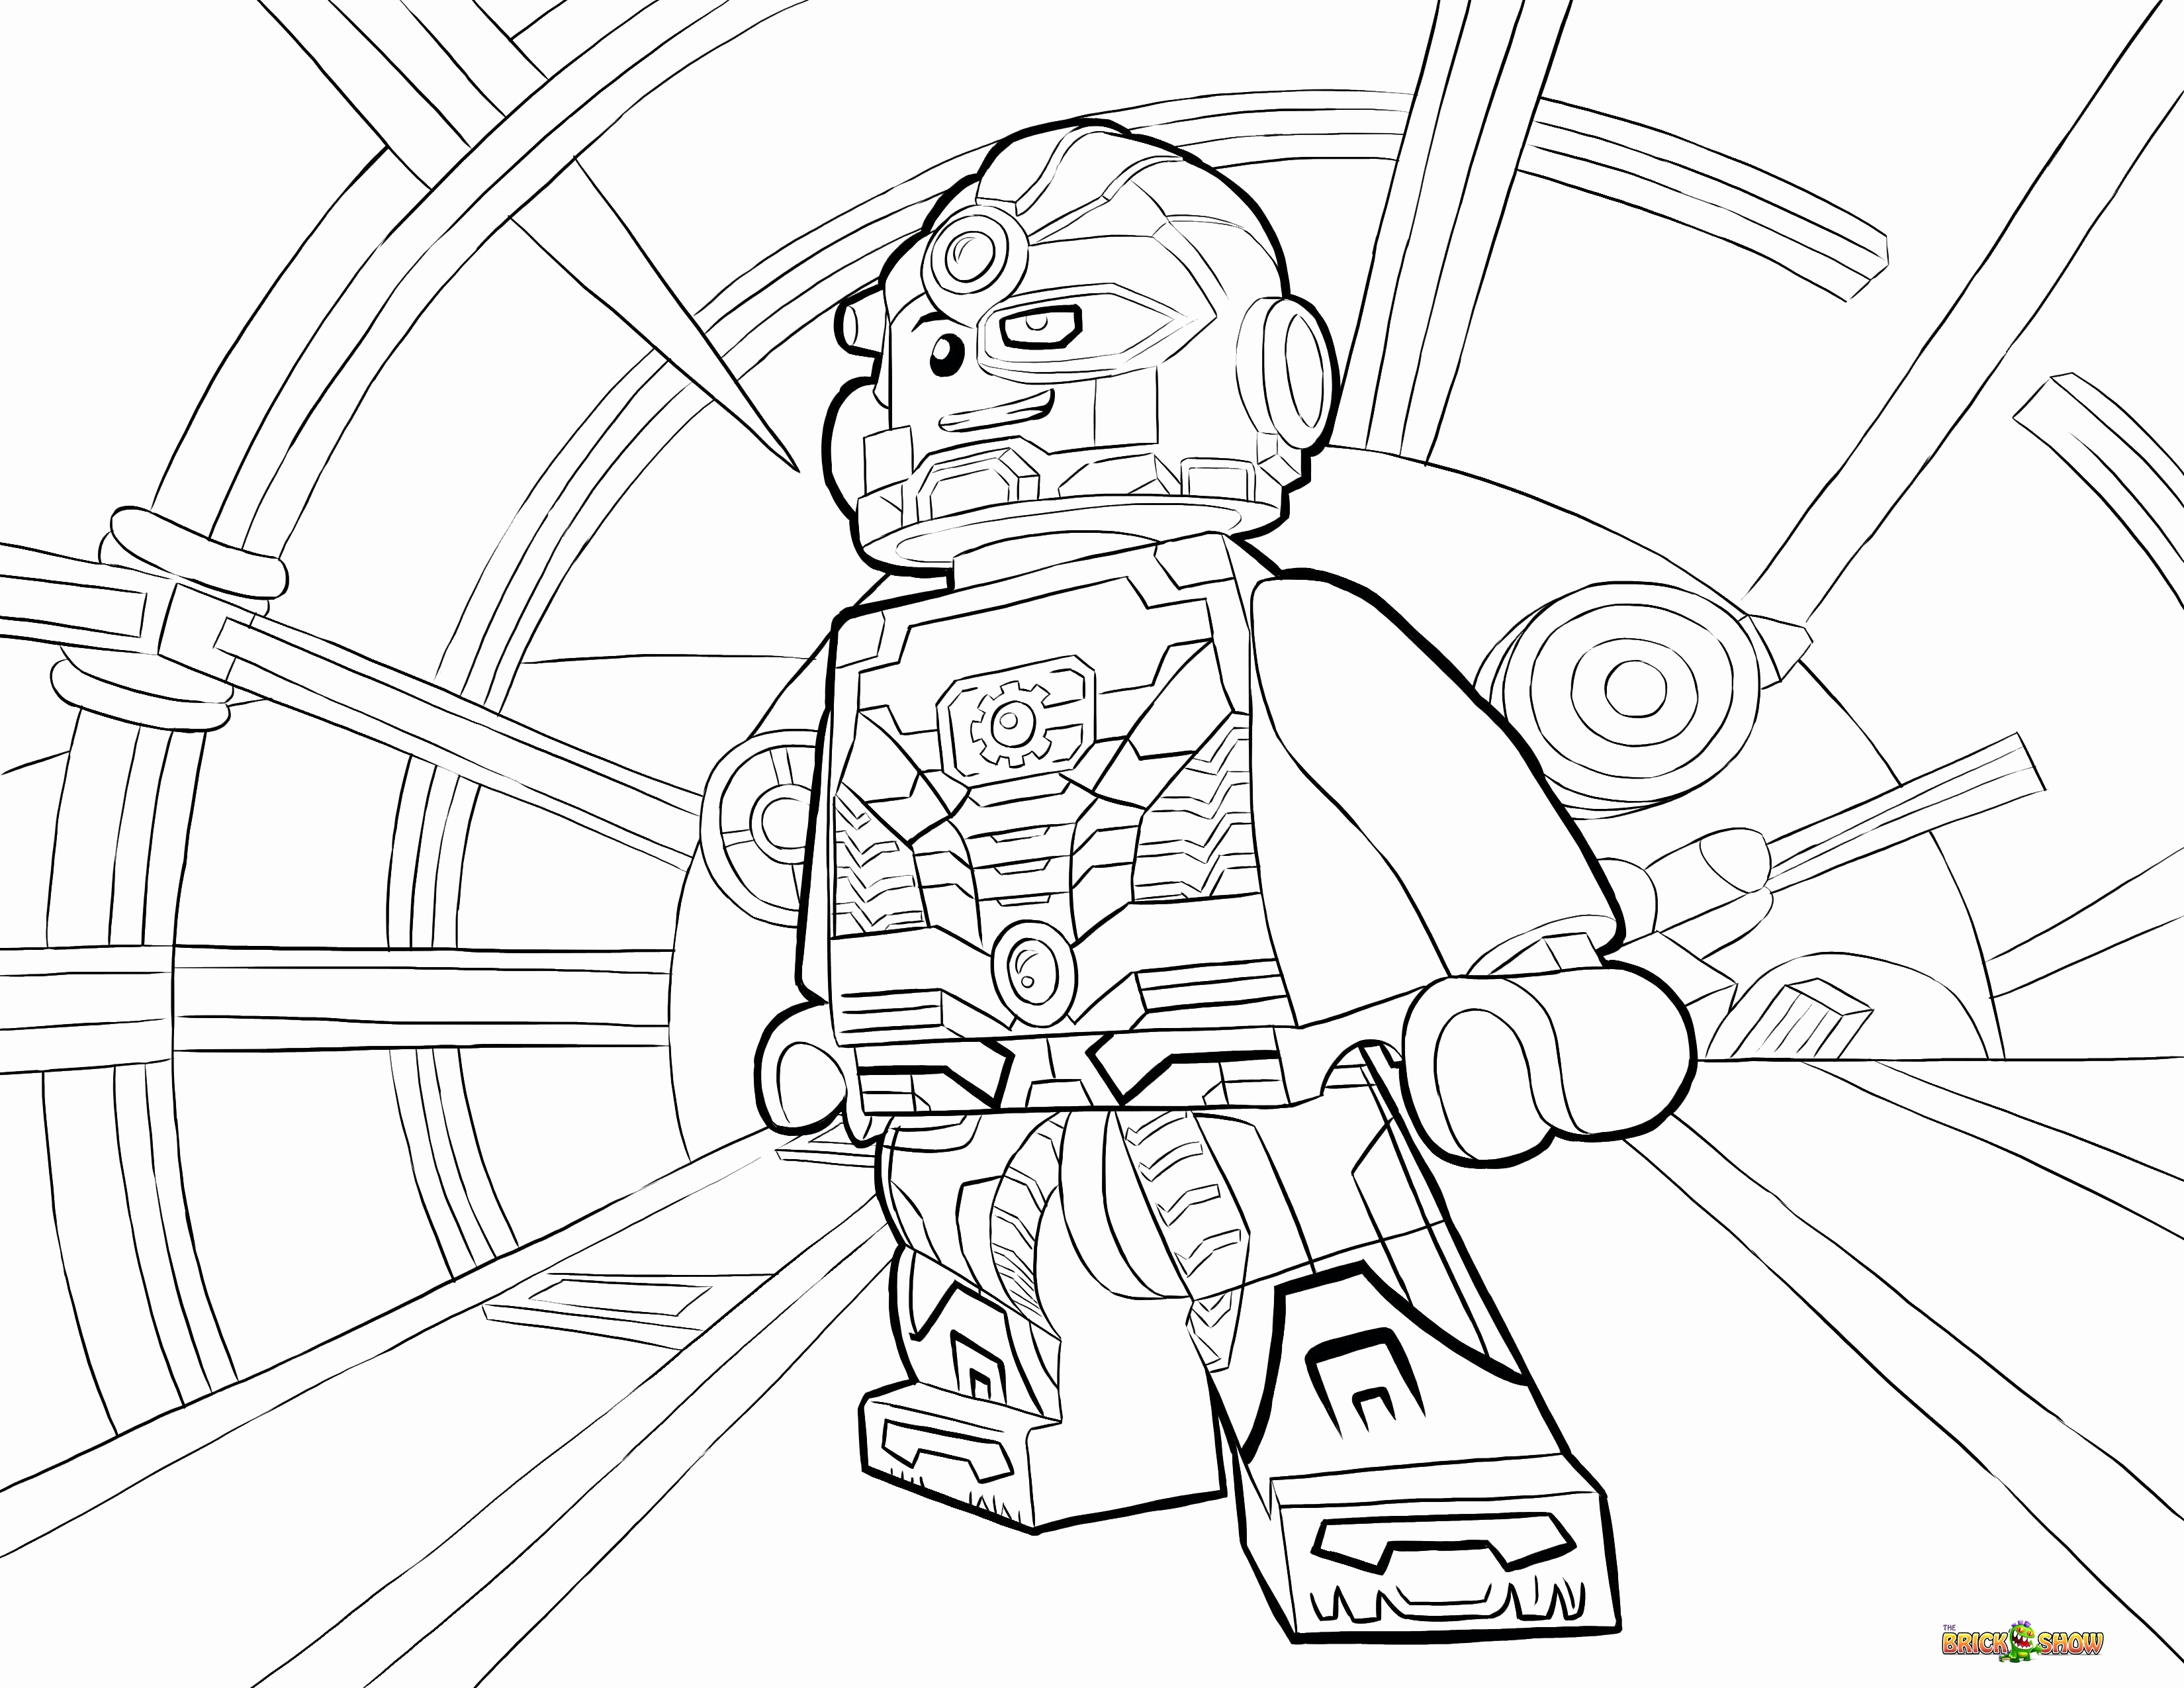 Lego Superhero Coloring Pages  to Print 5a - Save it to your computer